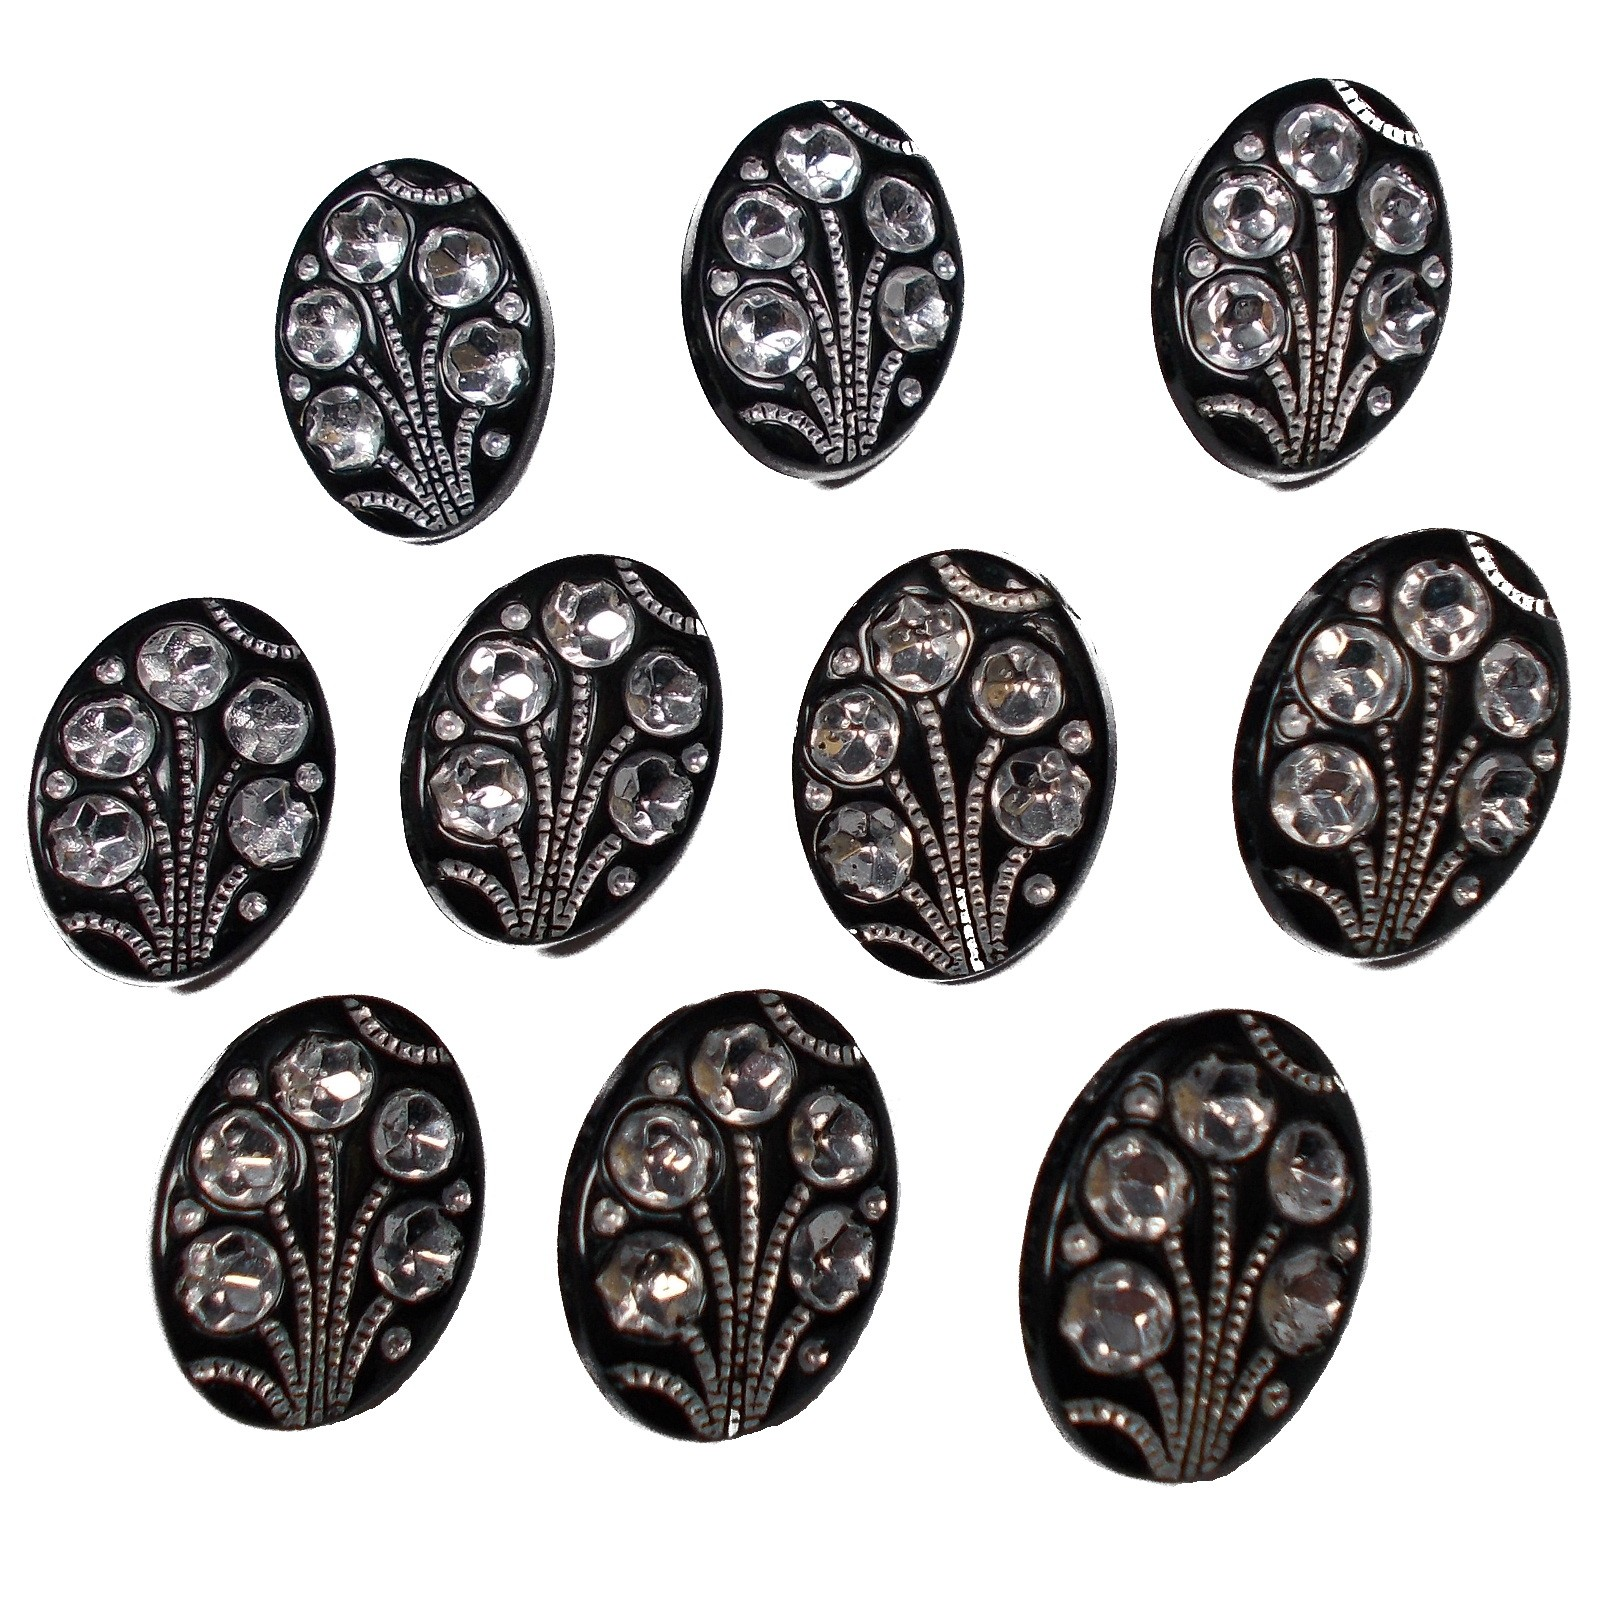 Black Diamante Art Deco Style Buttons 17mm x 12mm Oval Pack of 10